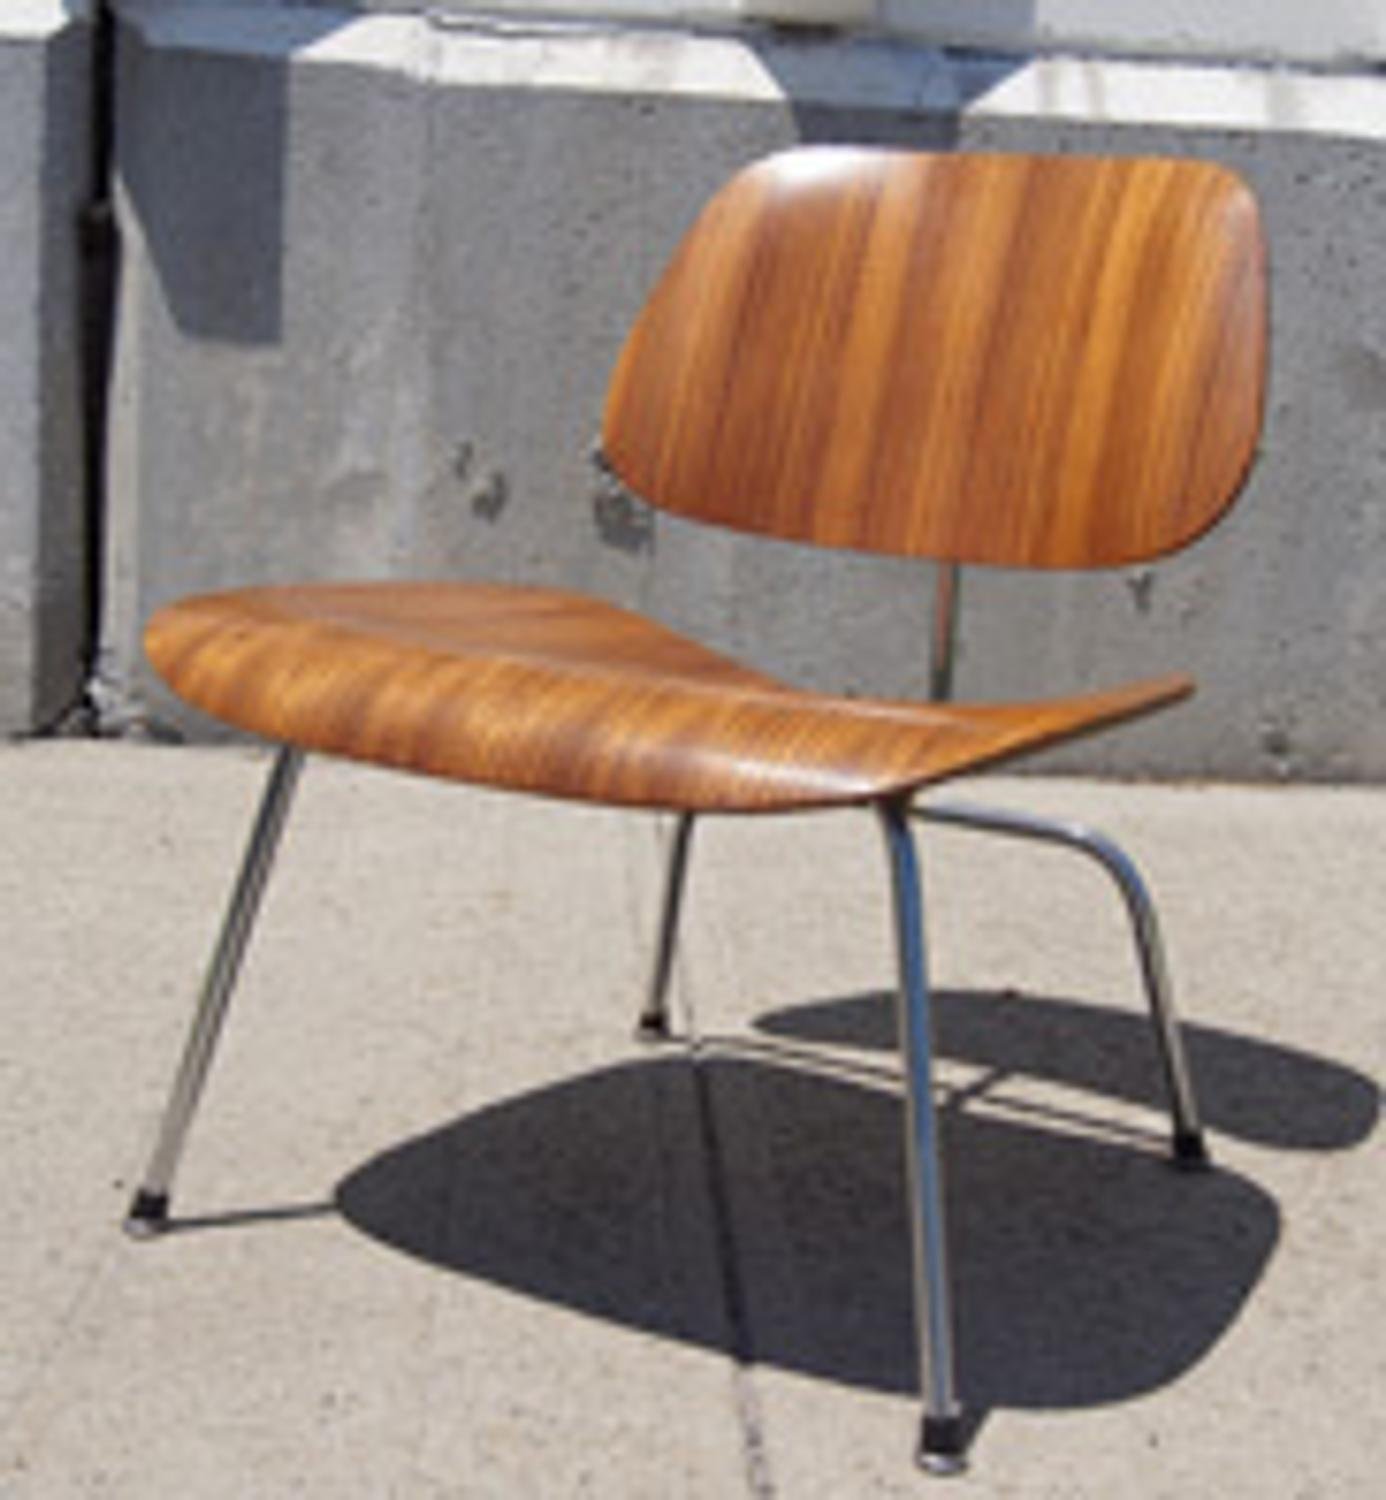 Boston crafts school hosts talk on mid 20th century for Mid 20th century furniture